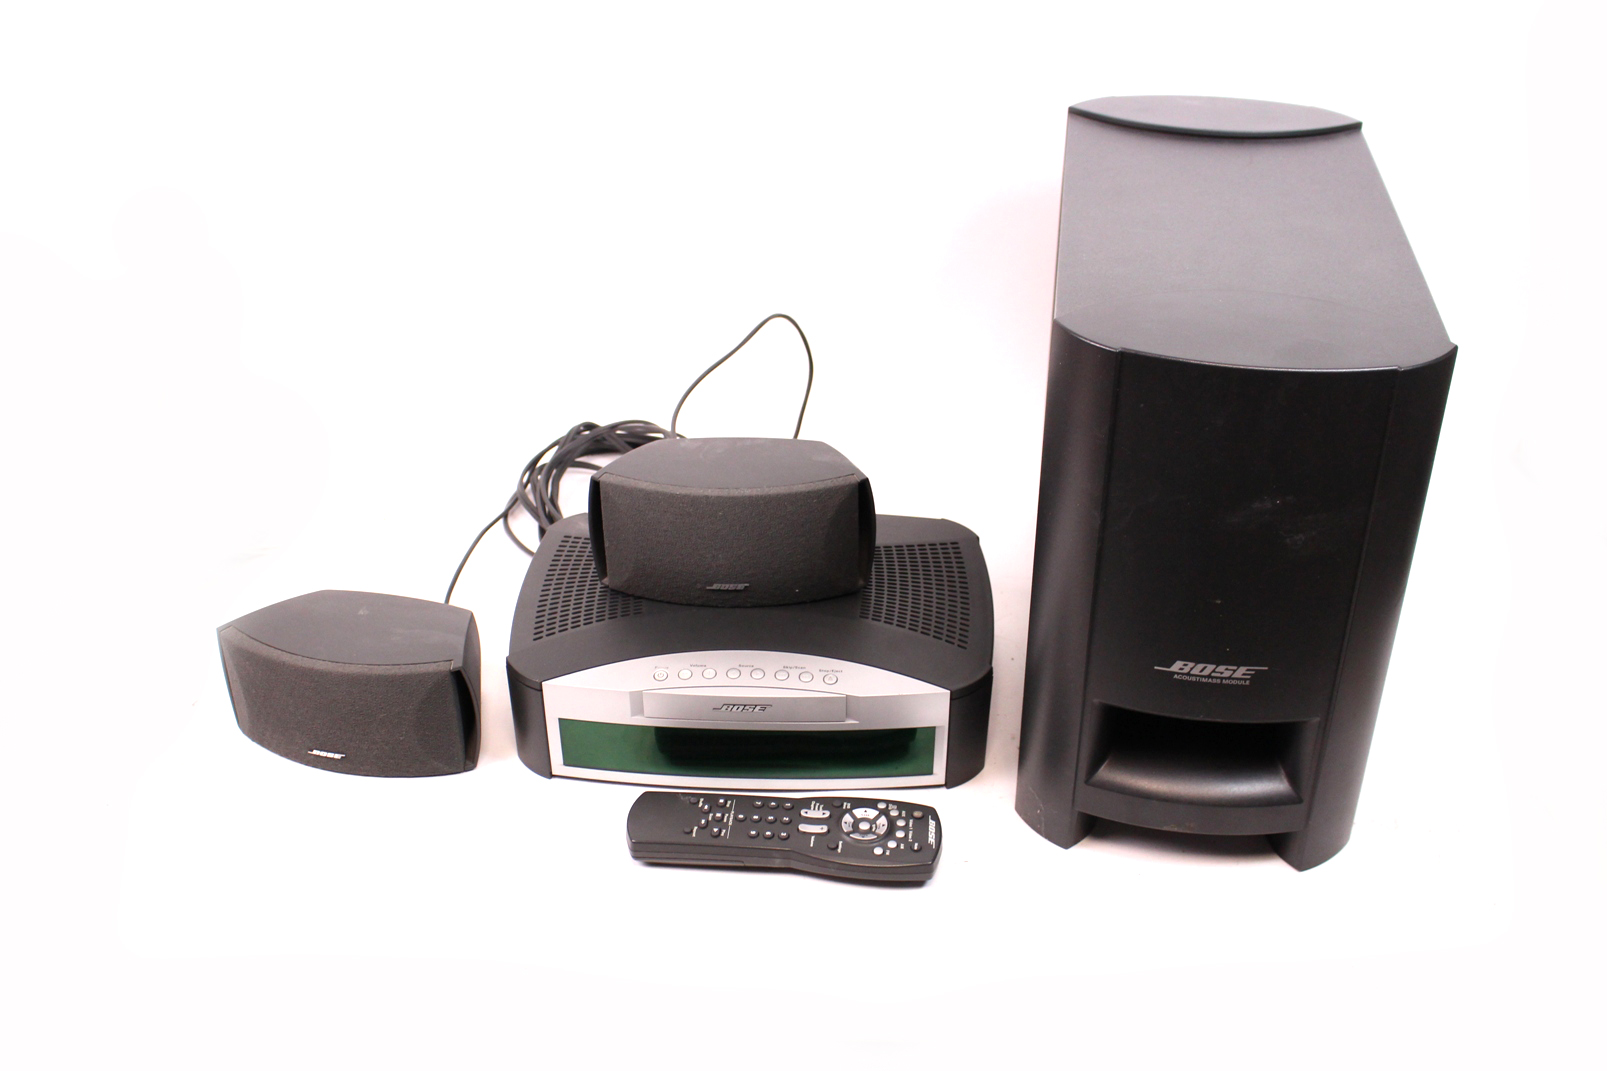 bose 3 2 1 heimkino system anlage cd dvd player ps subwoofer satelliten boxen ebay. Black Bedroom Furniture Sets. Home Design Ideas